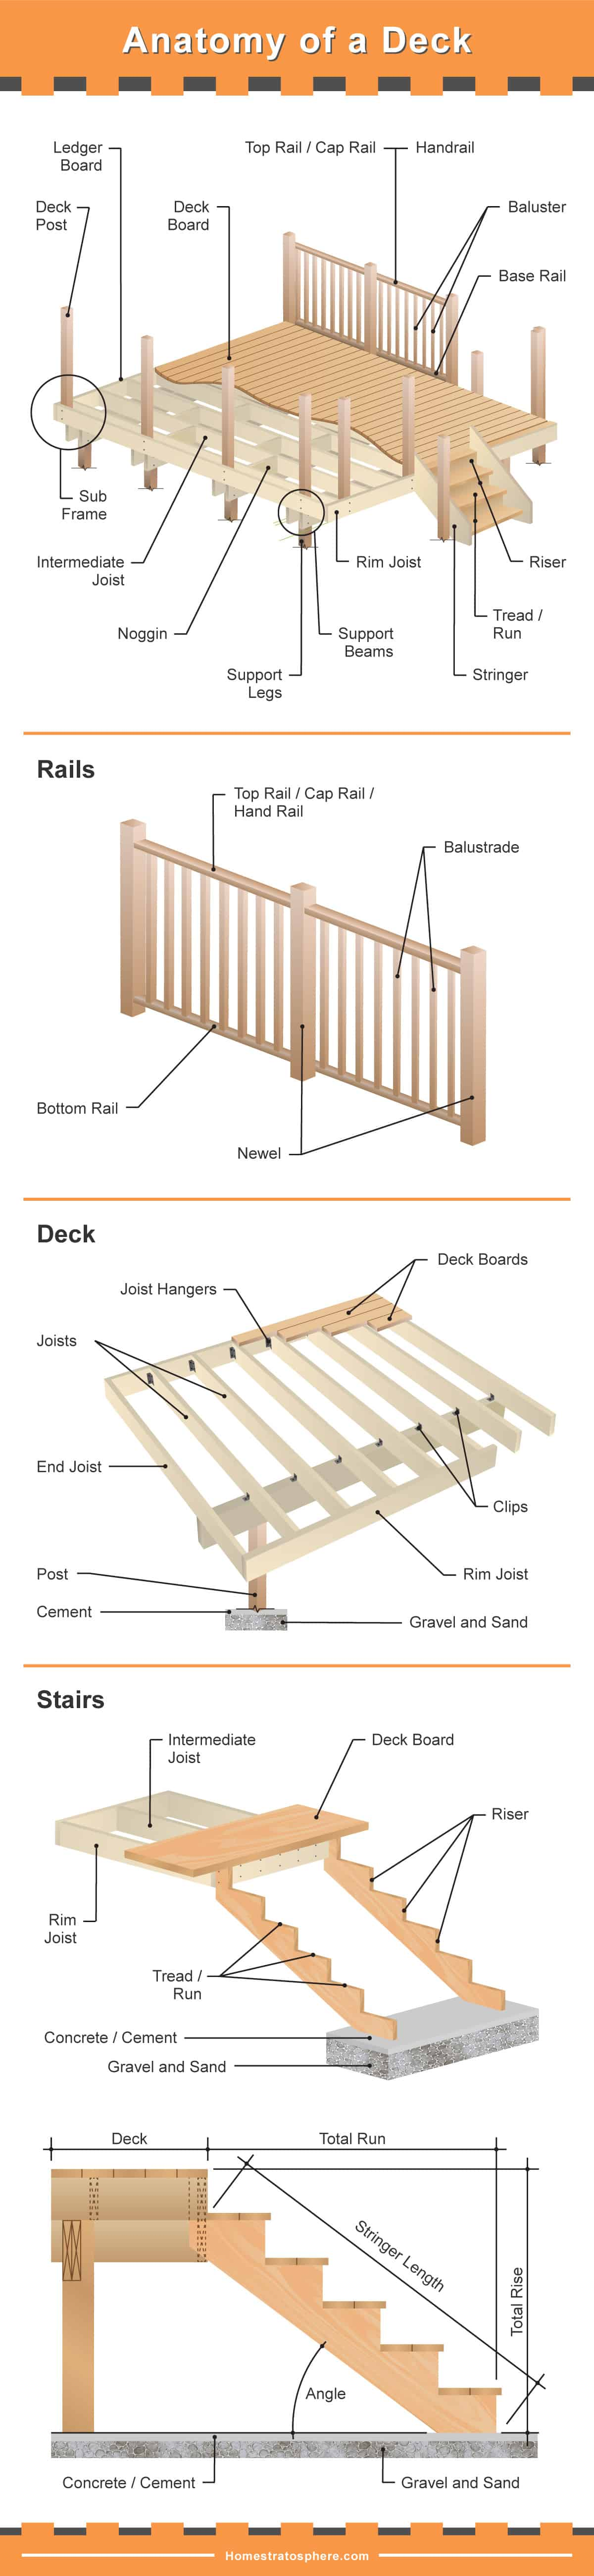 201 Deck Ideas And Designs For 2019  Pictures